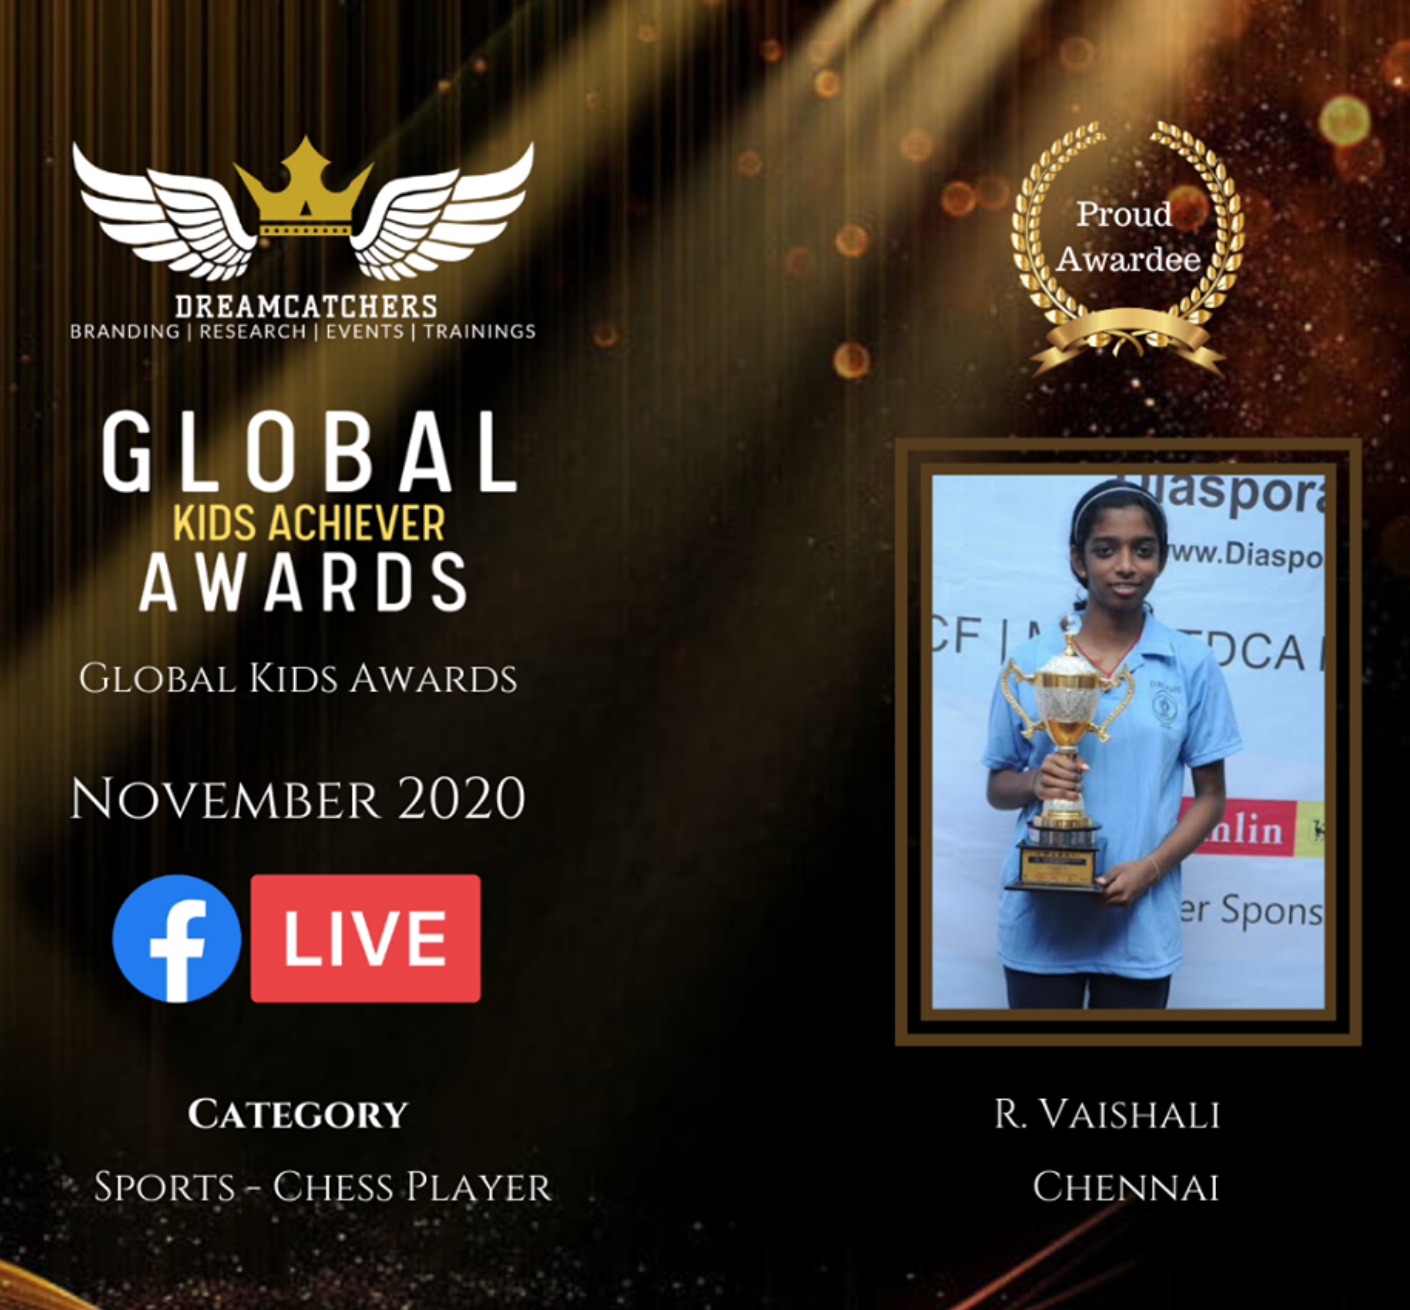 Vaishali received Global Kids Achievers Awards 2020 – Sports Chess Player